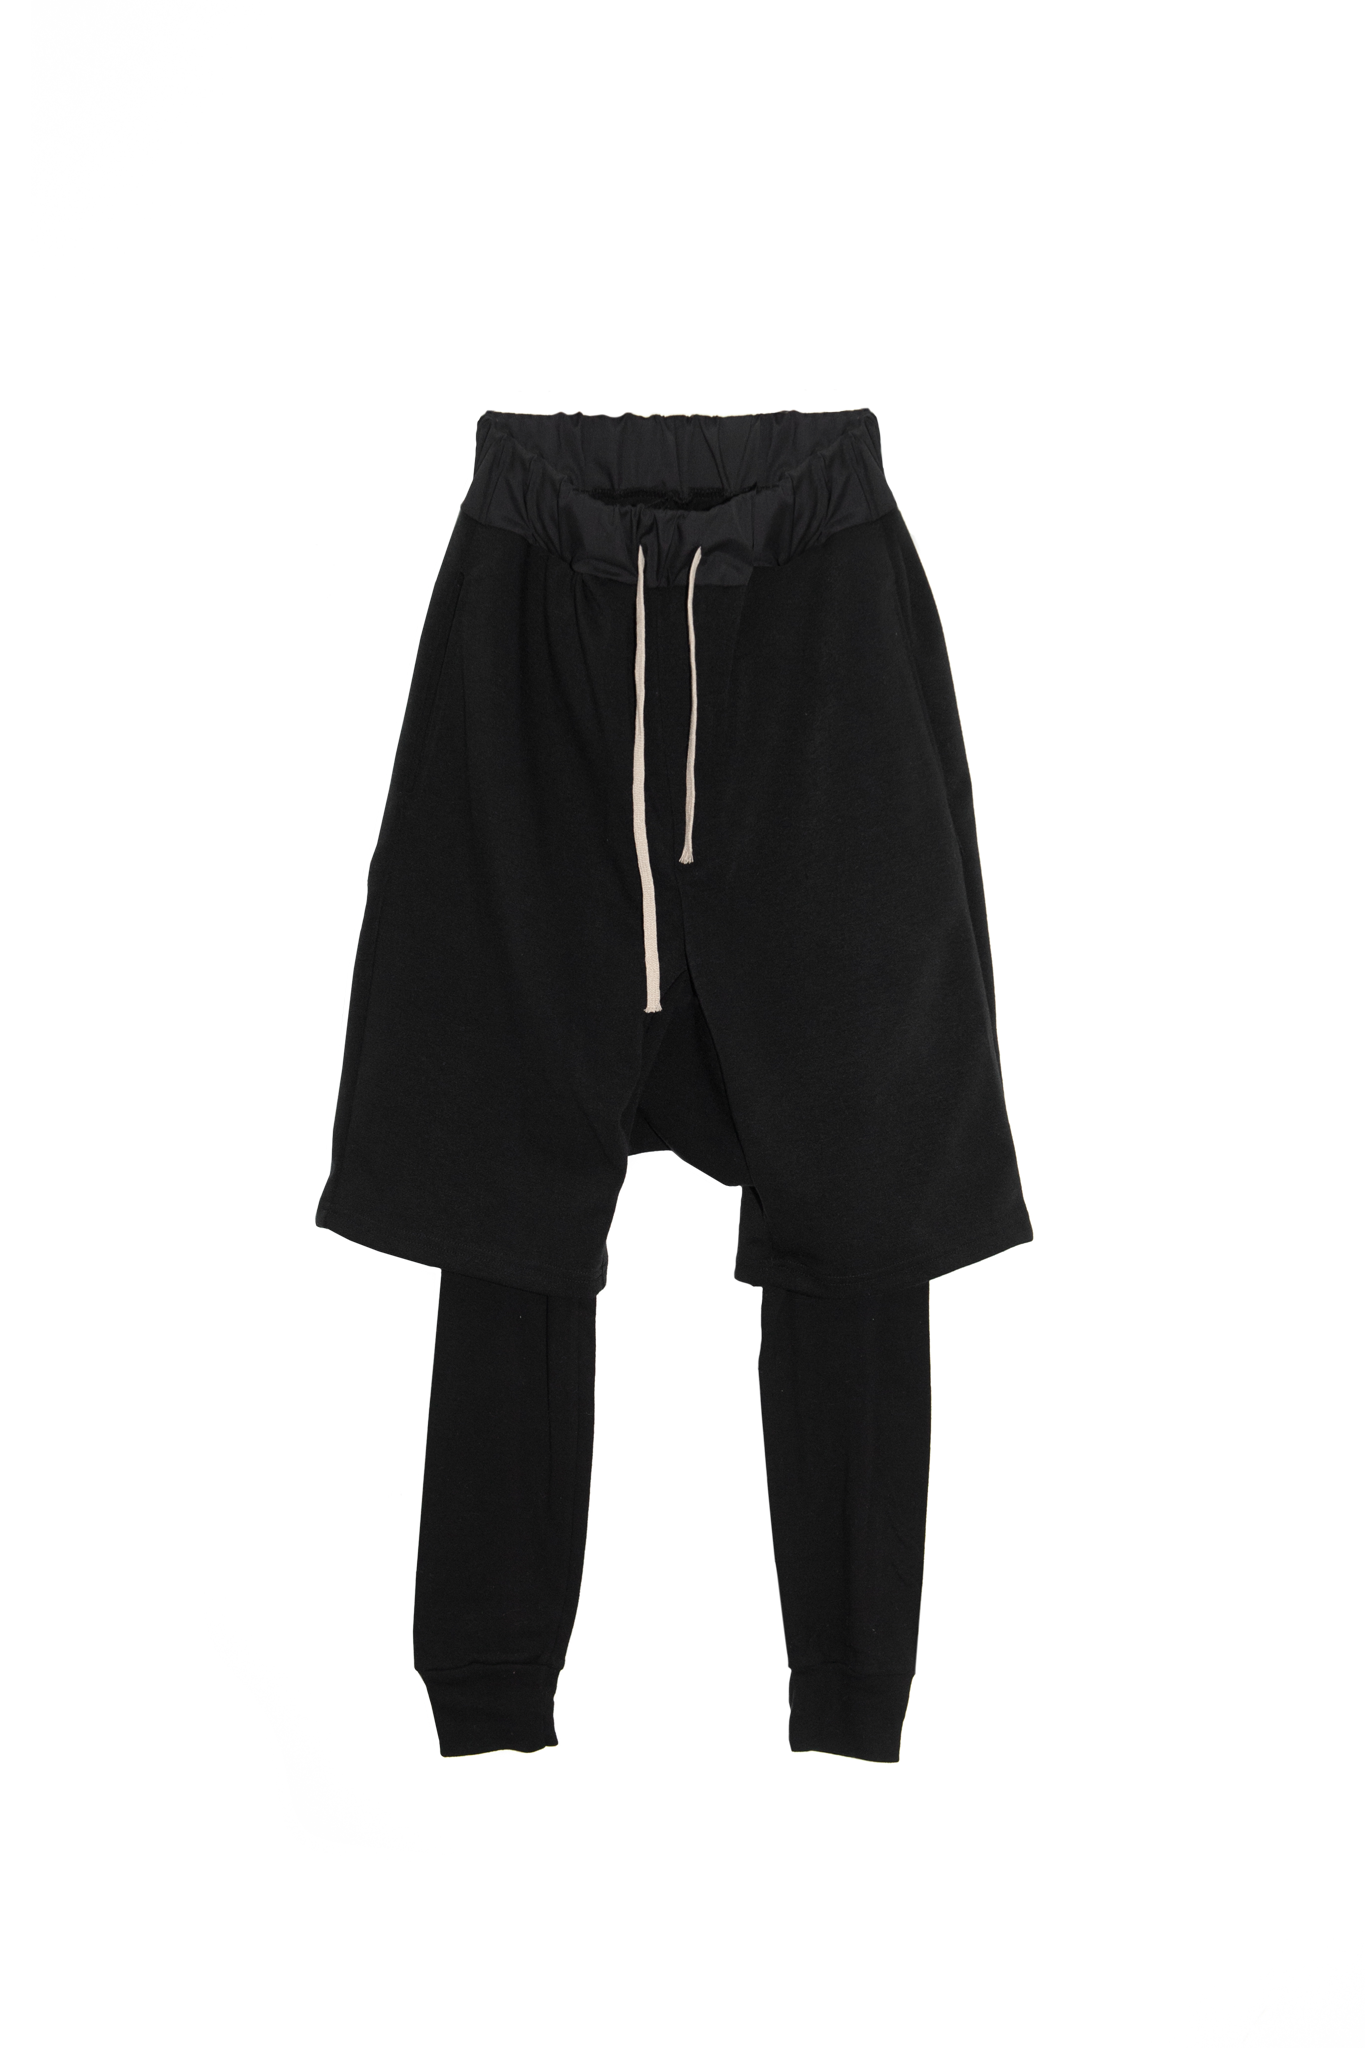 Pants drop layered black